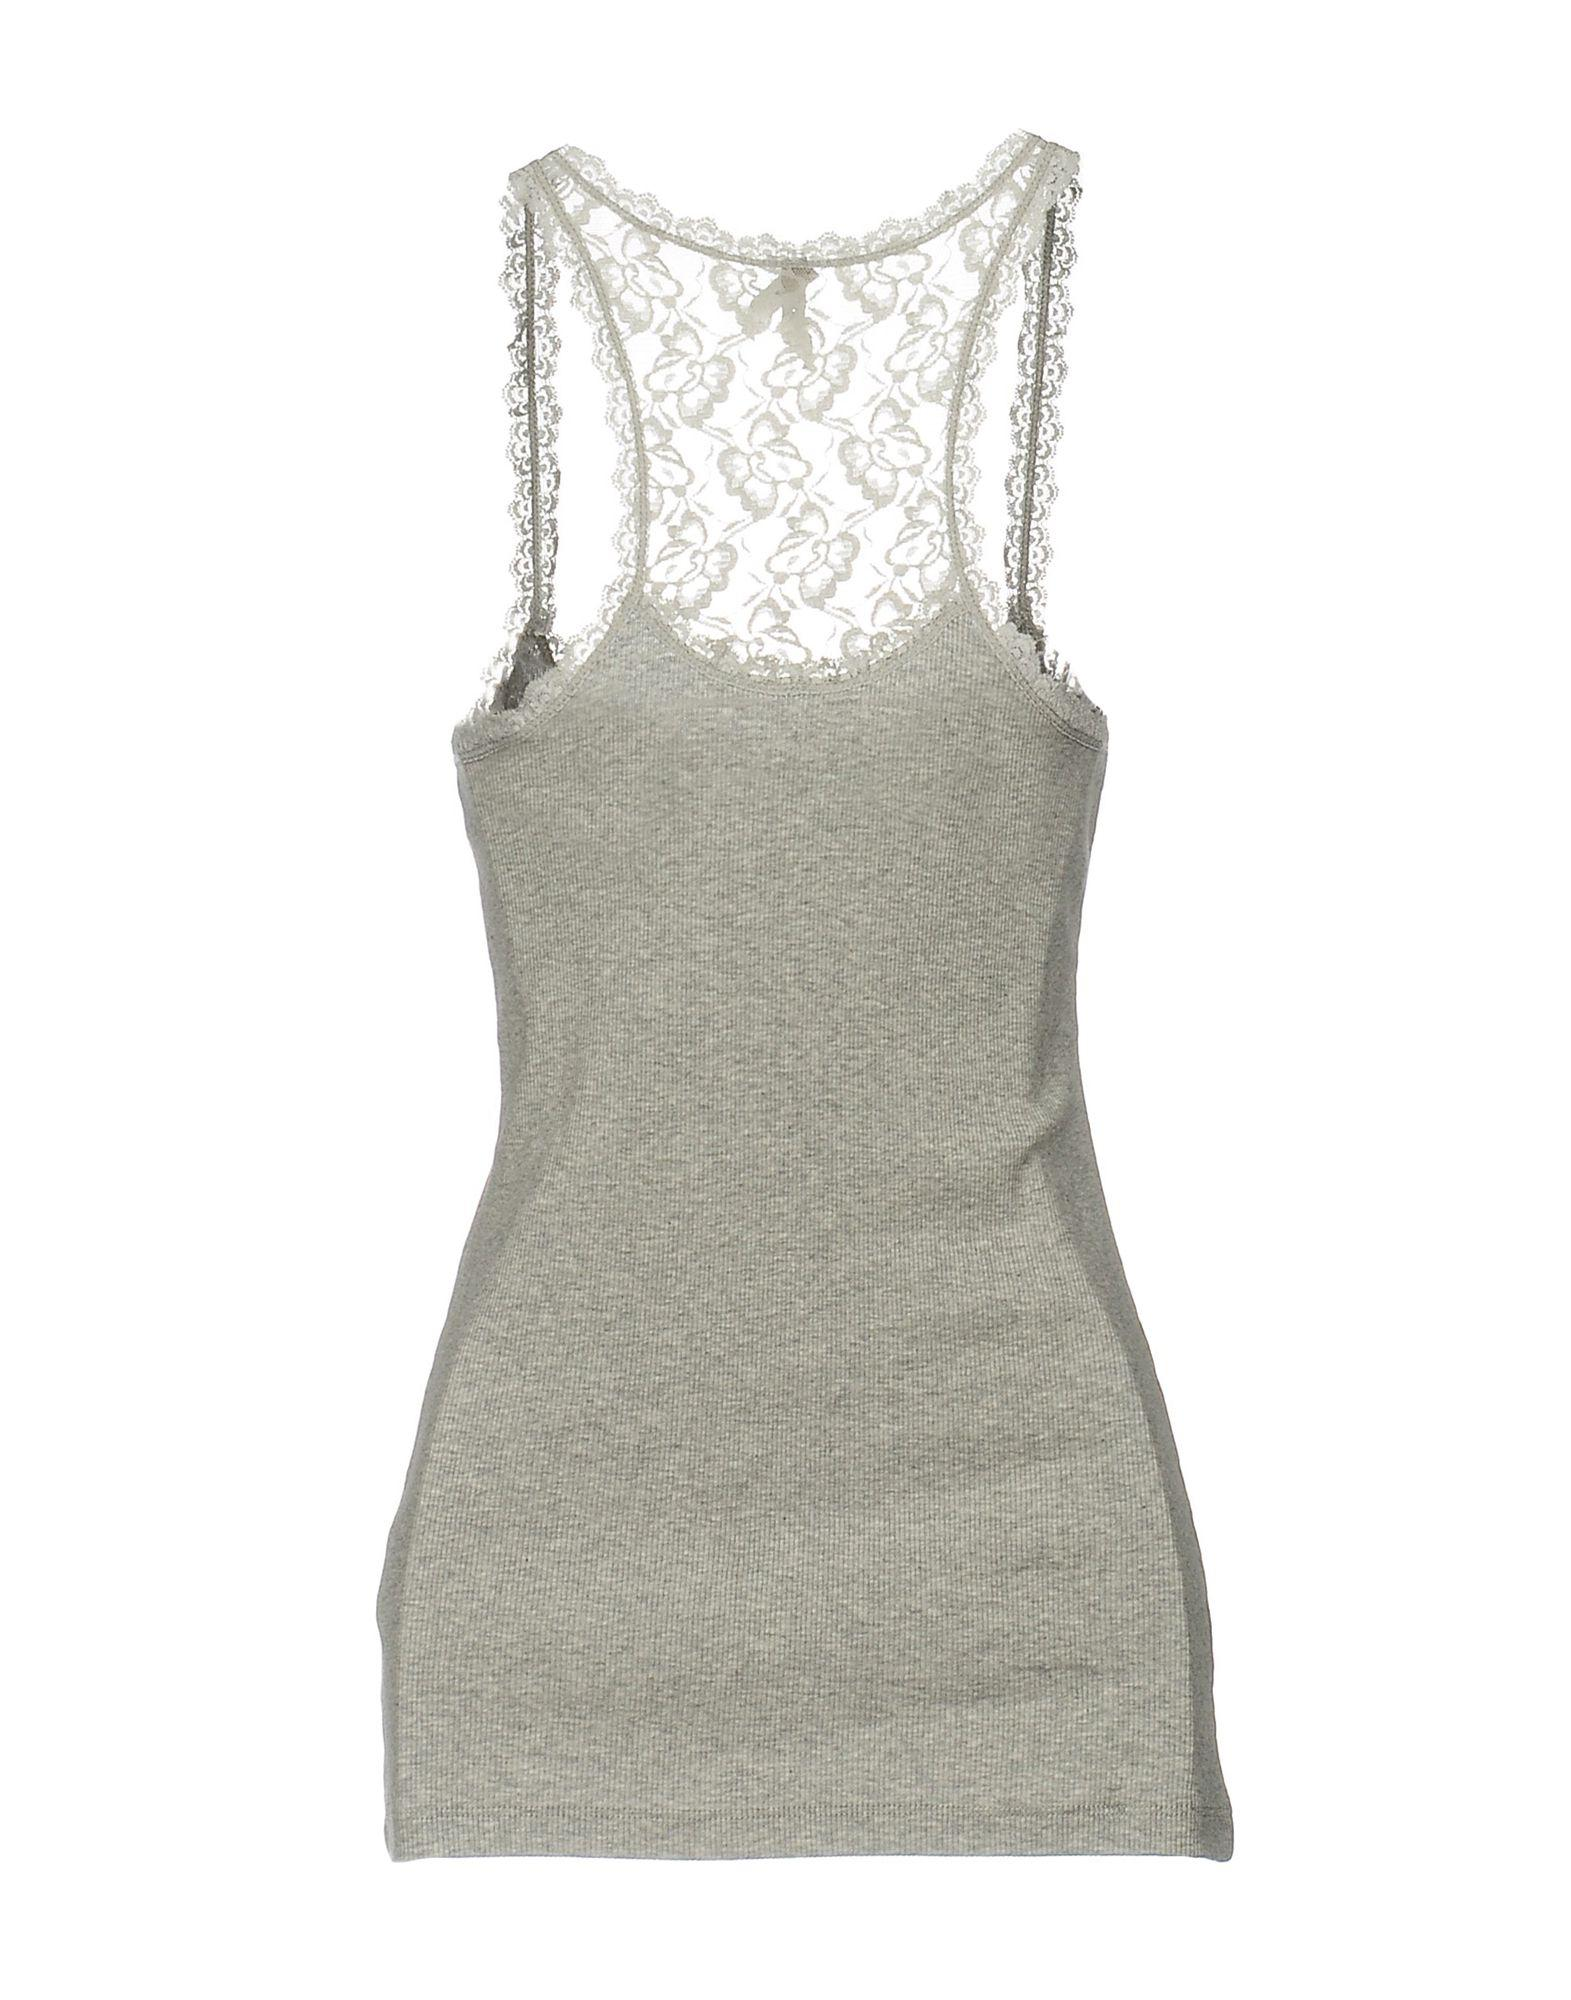 Pepe Jeans Lace Tank Top in Light Grey (Grey)